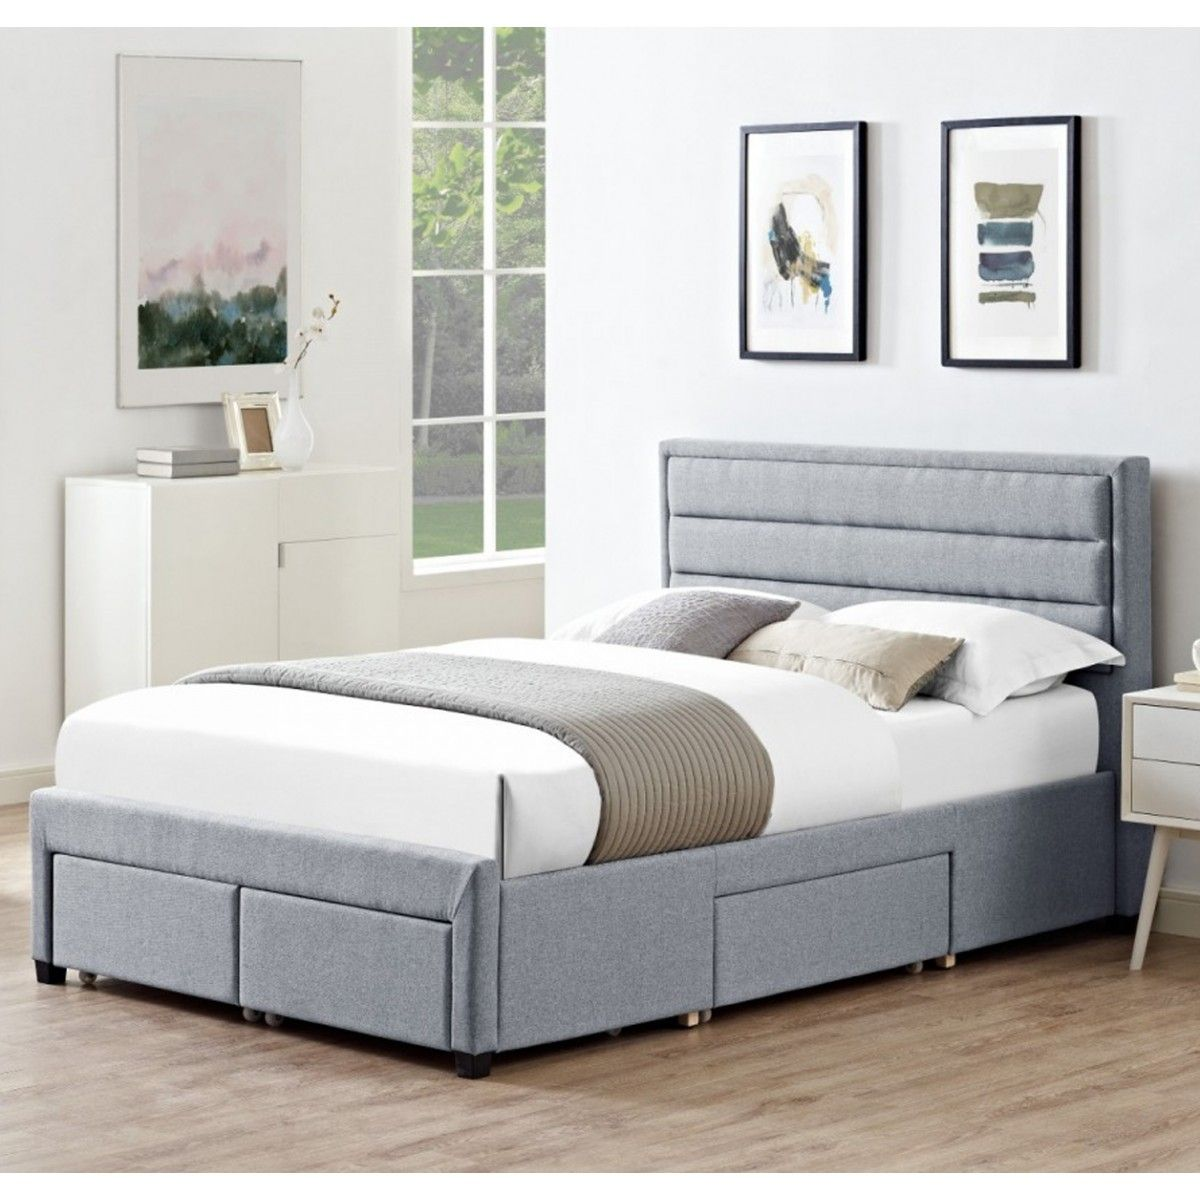 Dijon Grey Fabric 4 Drawer Storage Double Bed 19ld200